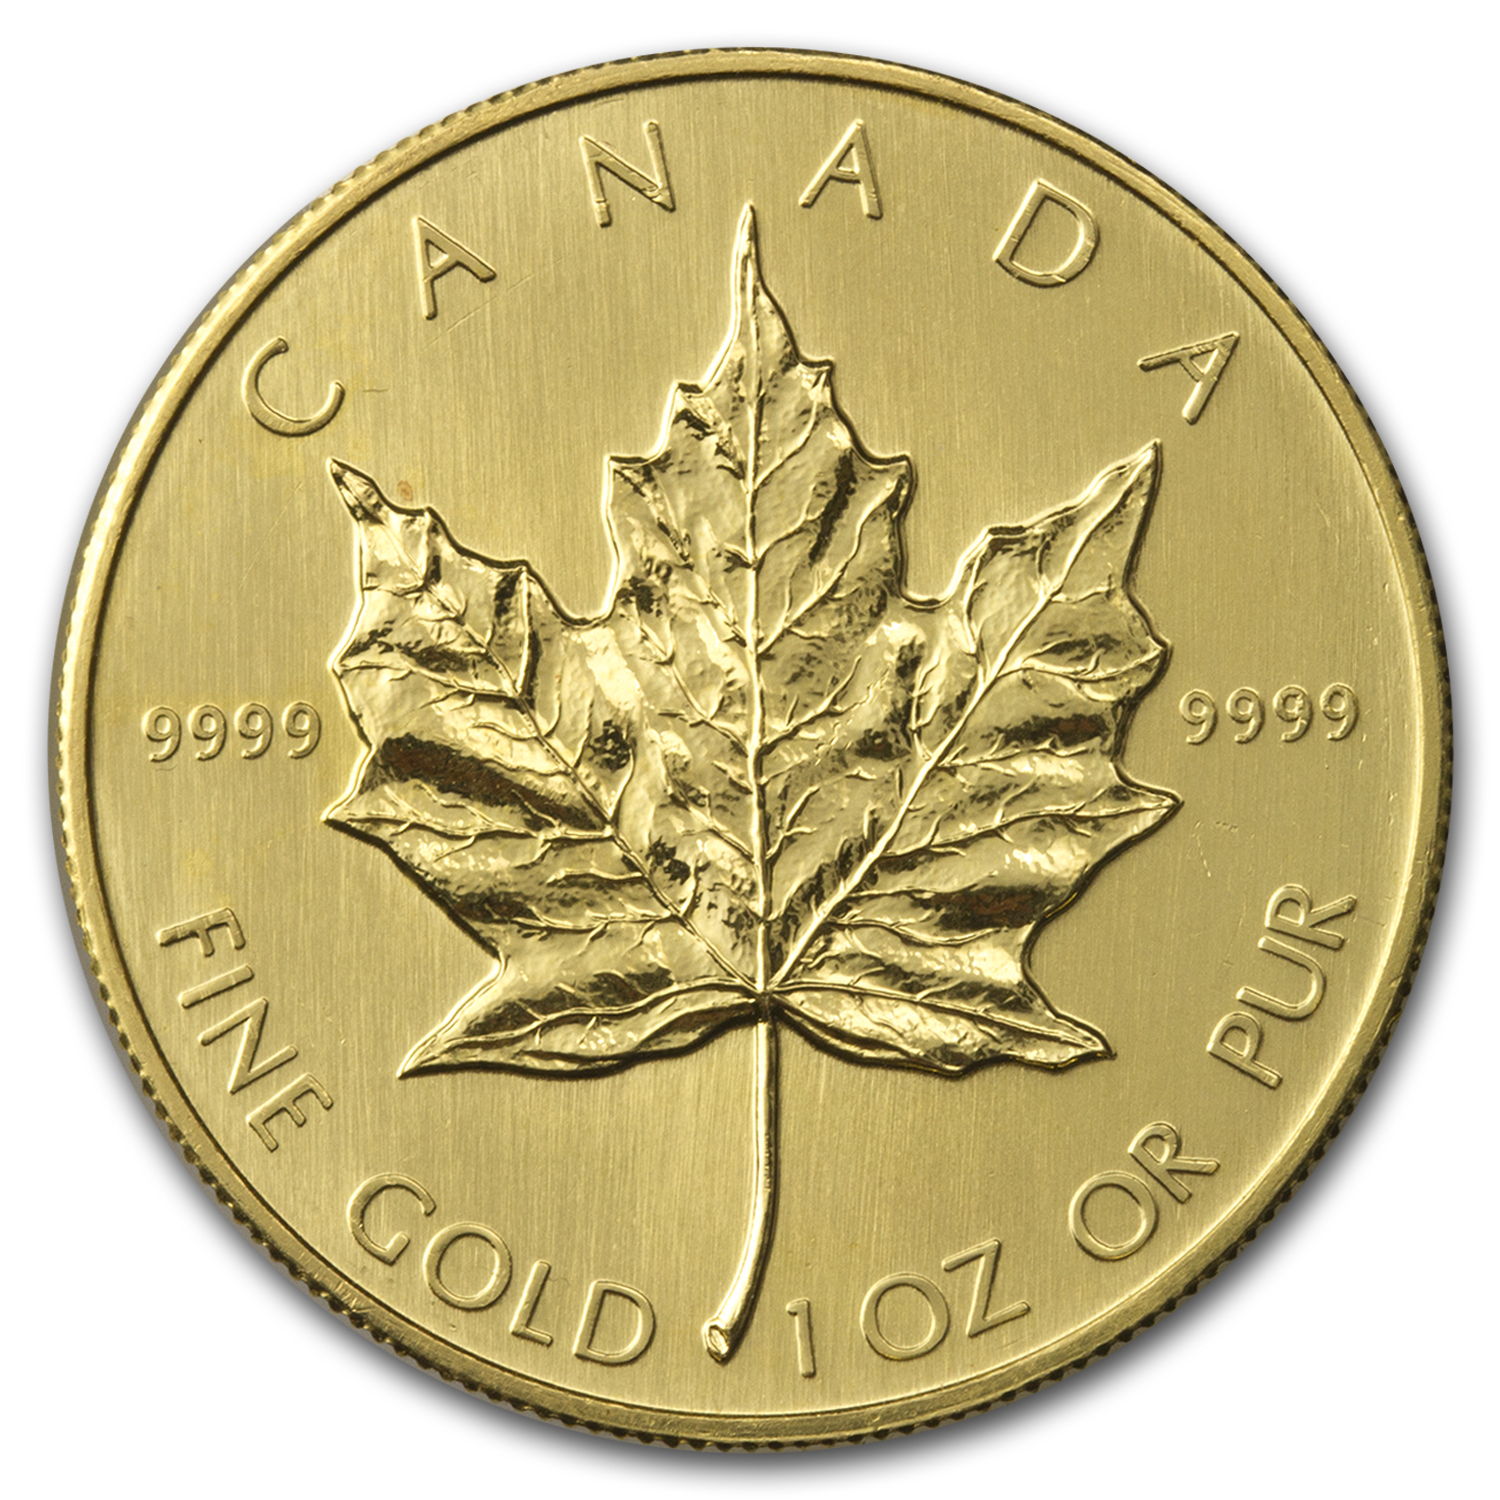 1985 1 oz Gold Canadian Maple Leaf - Brilliant Uncirculated